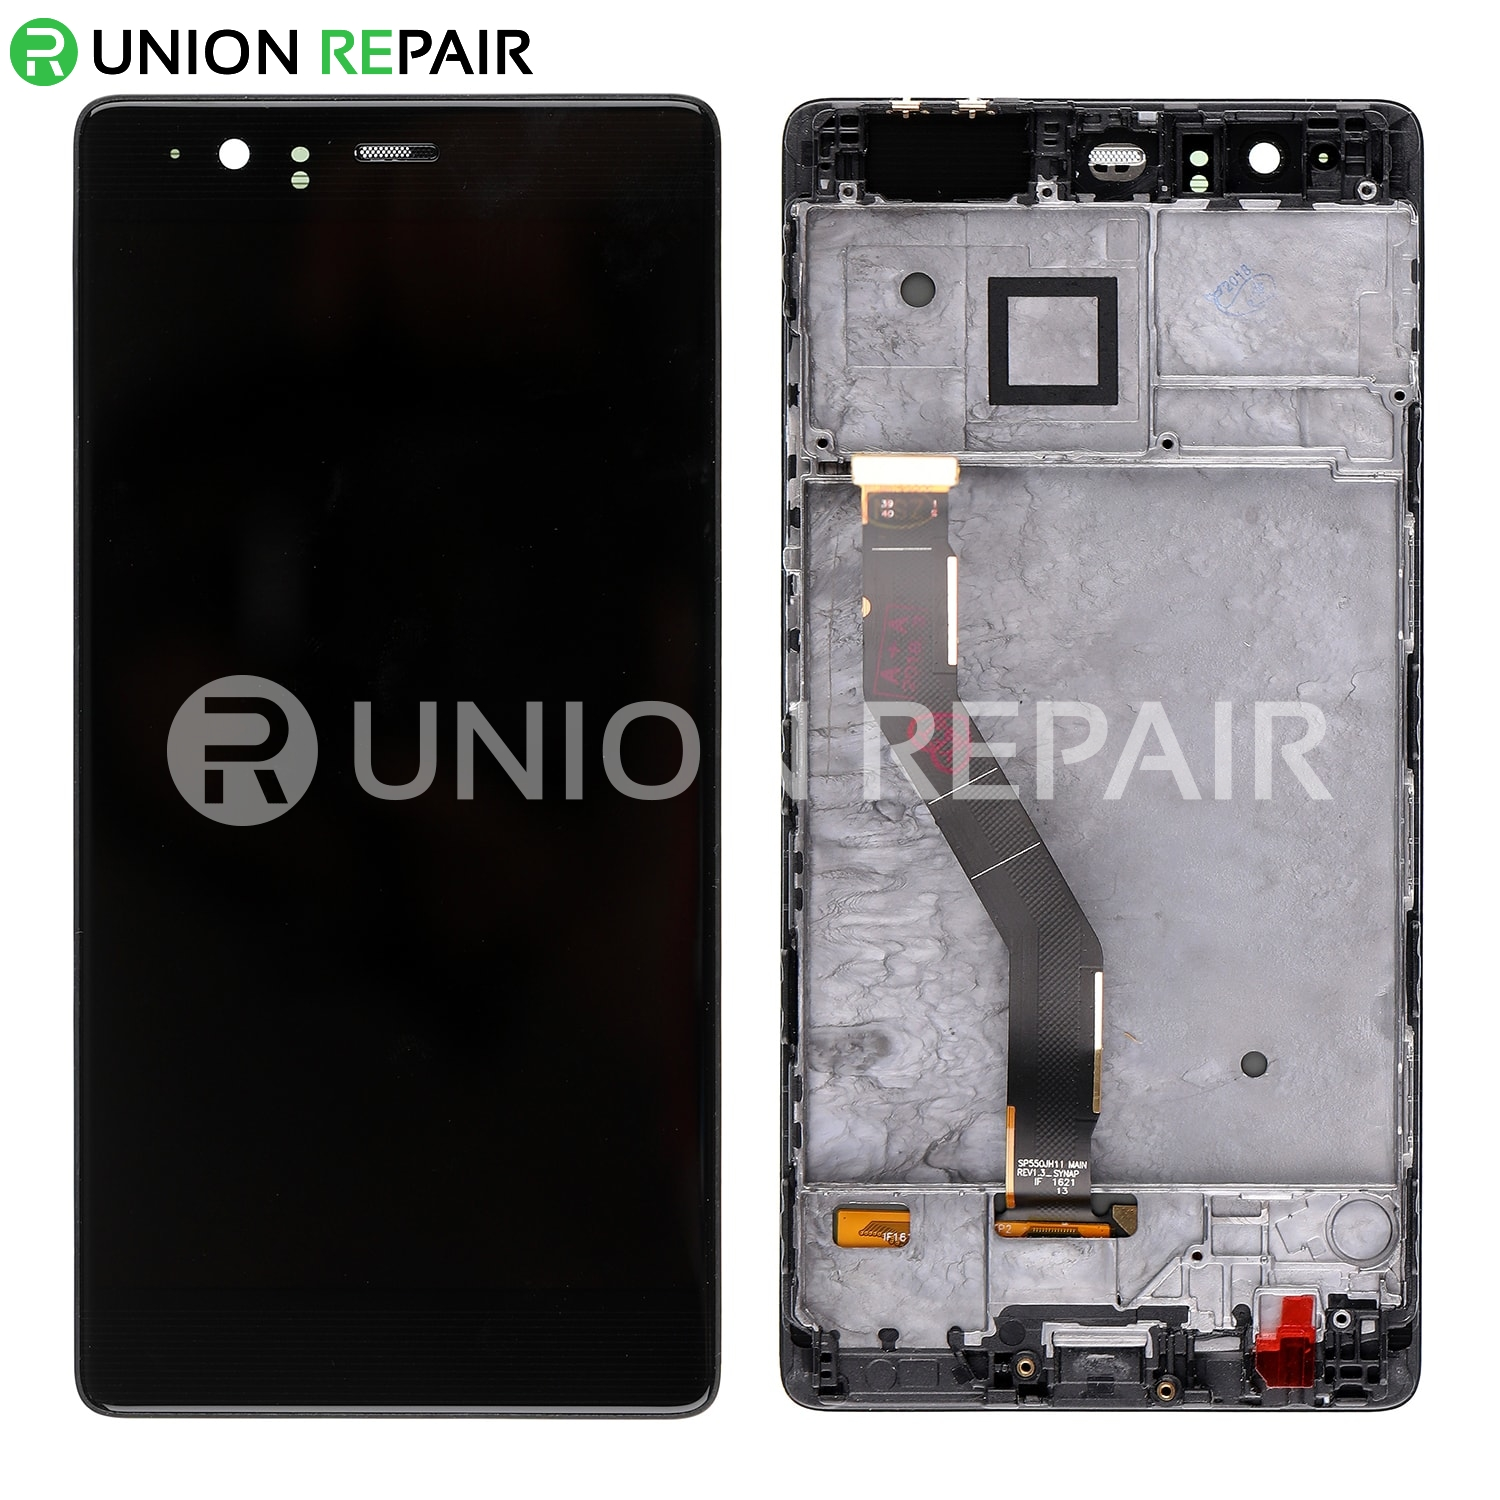 Replacement for Huawei P9 Plus LCD Digitizer Assembly with Frame - Black